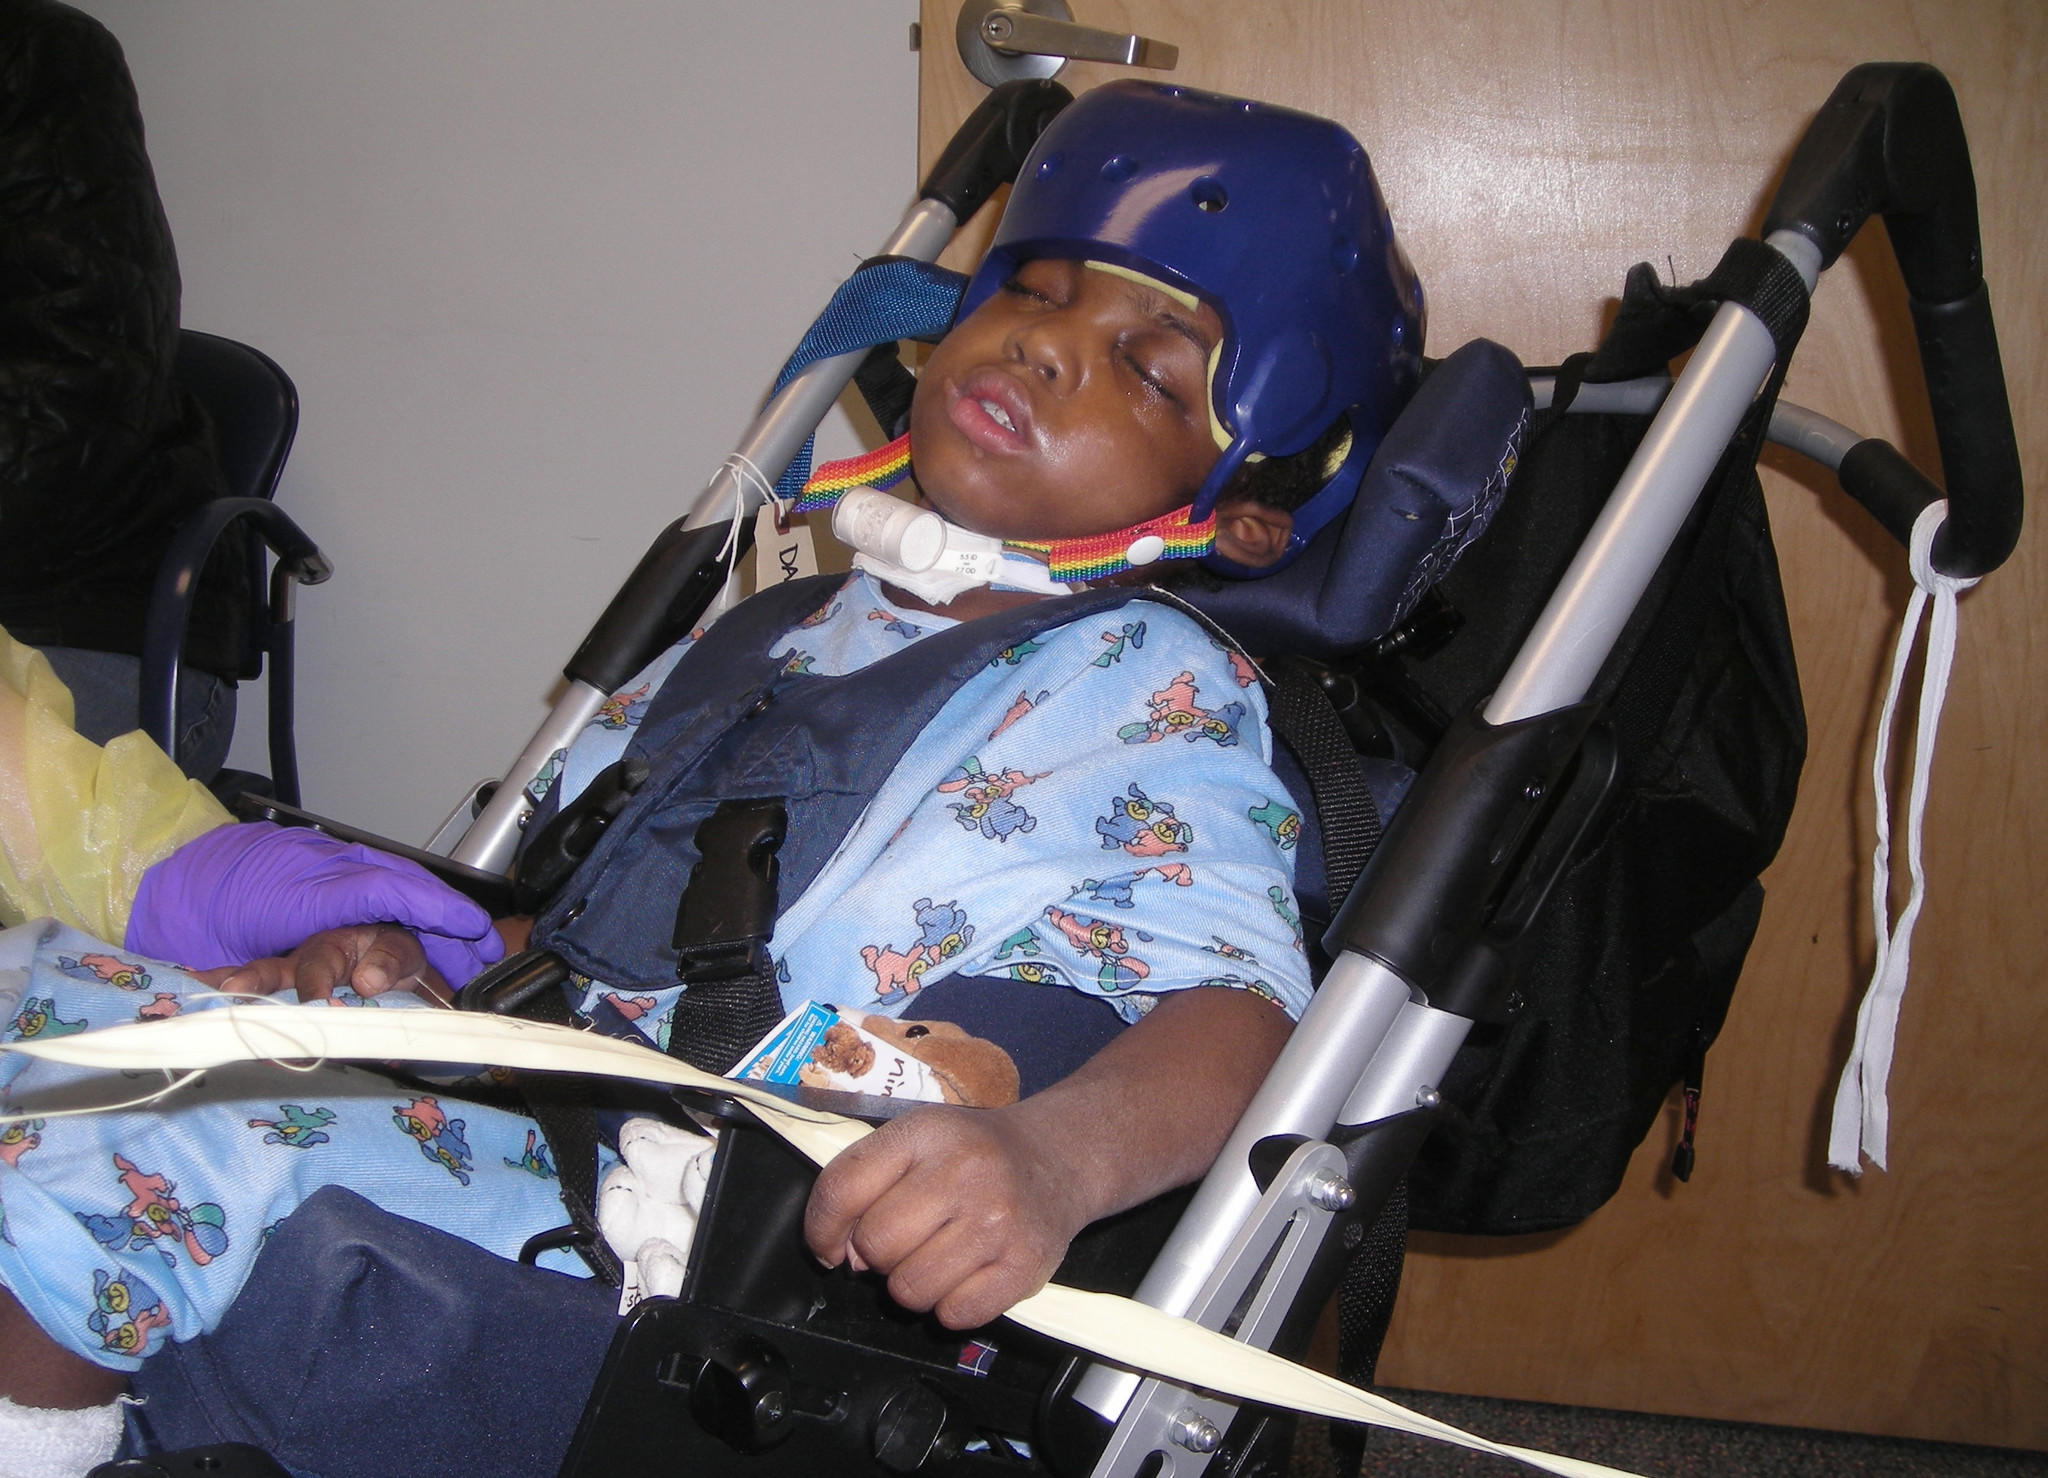 Damaud Martin, shown in 2008, was diagnosed as suffering from shaken baby syndrome, according to the Baltimore Department of Social Services.